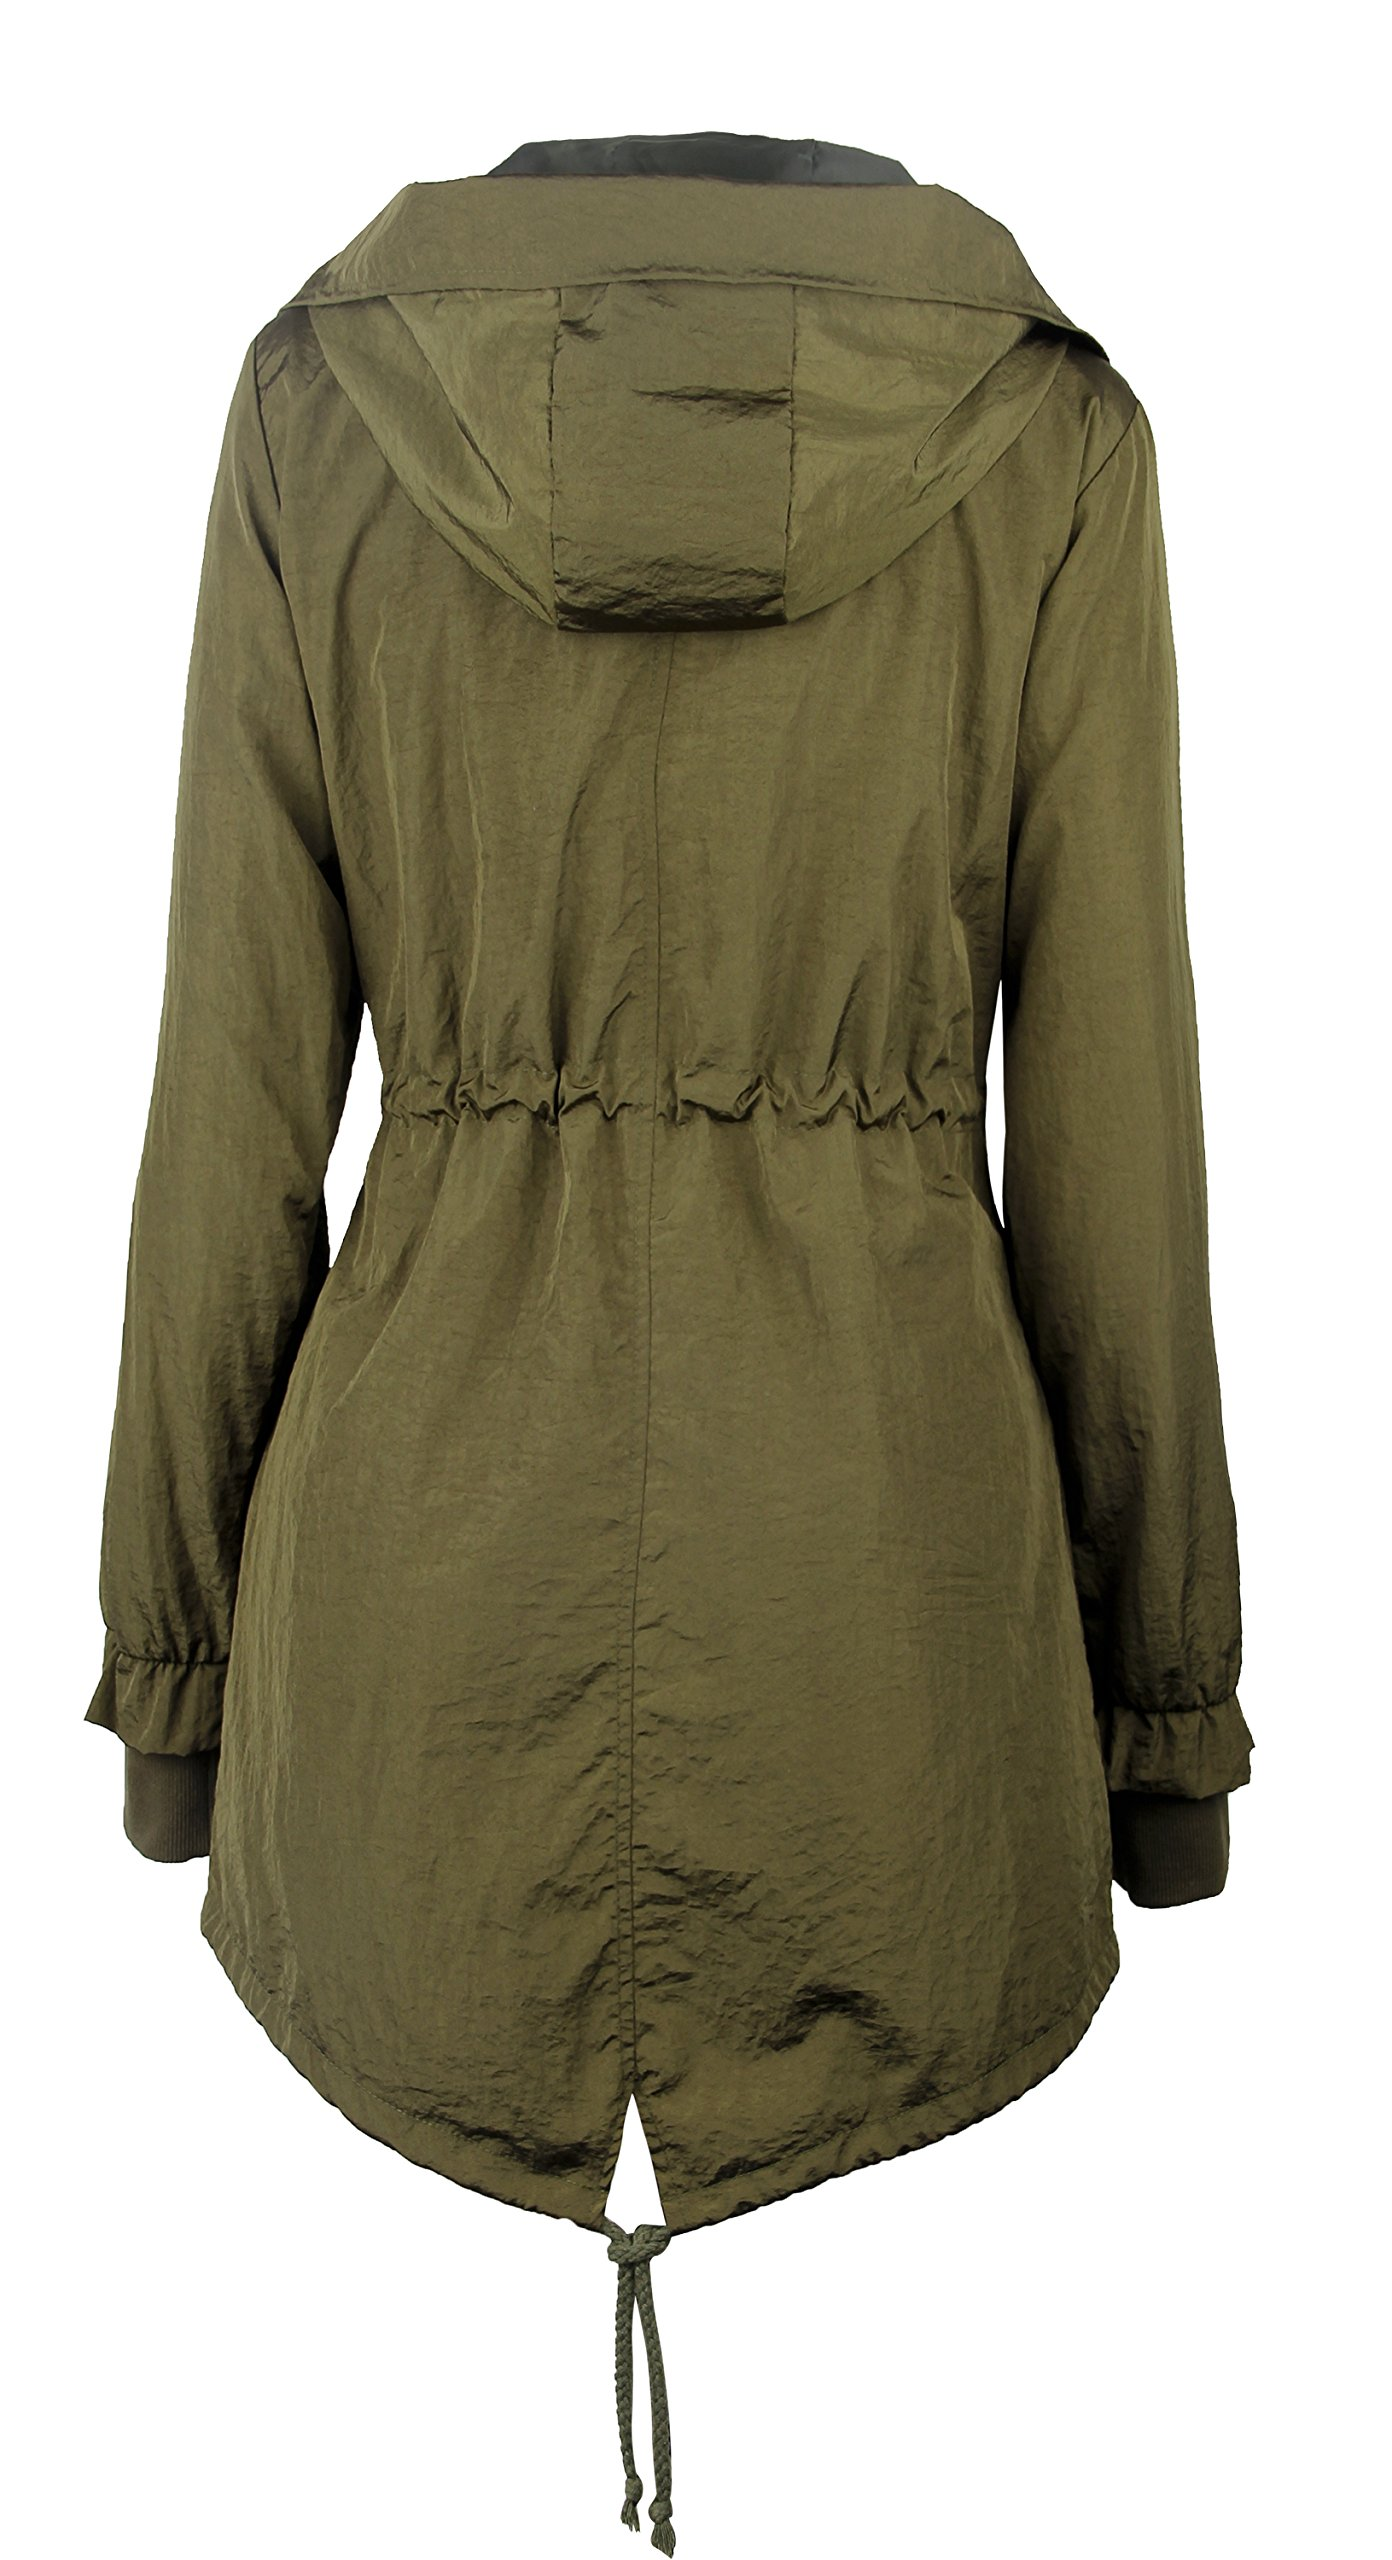 iLoveSIA Women's Military Trench rain Jacket with Hood Jacket Arm Green US 12 by iLoveSIA (Image #2)